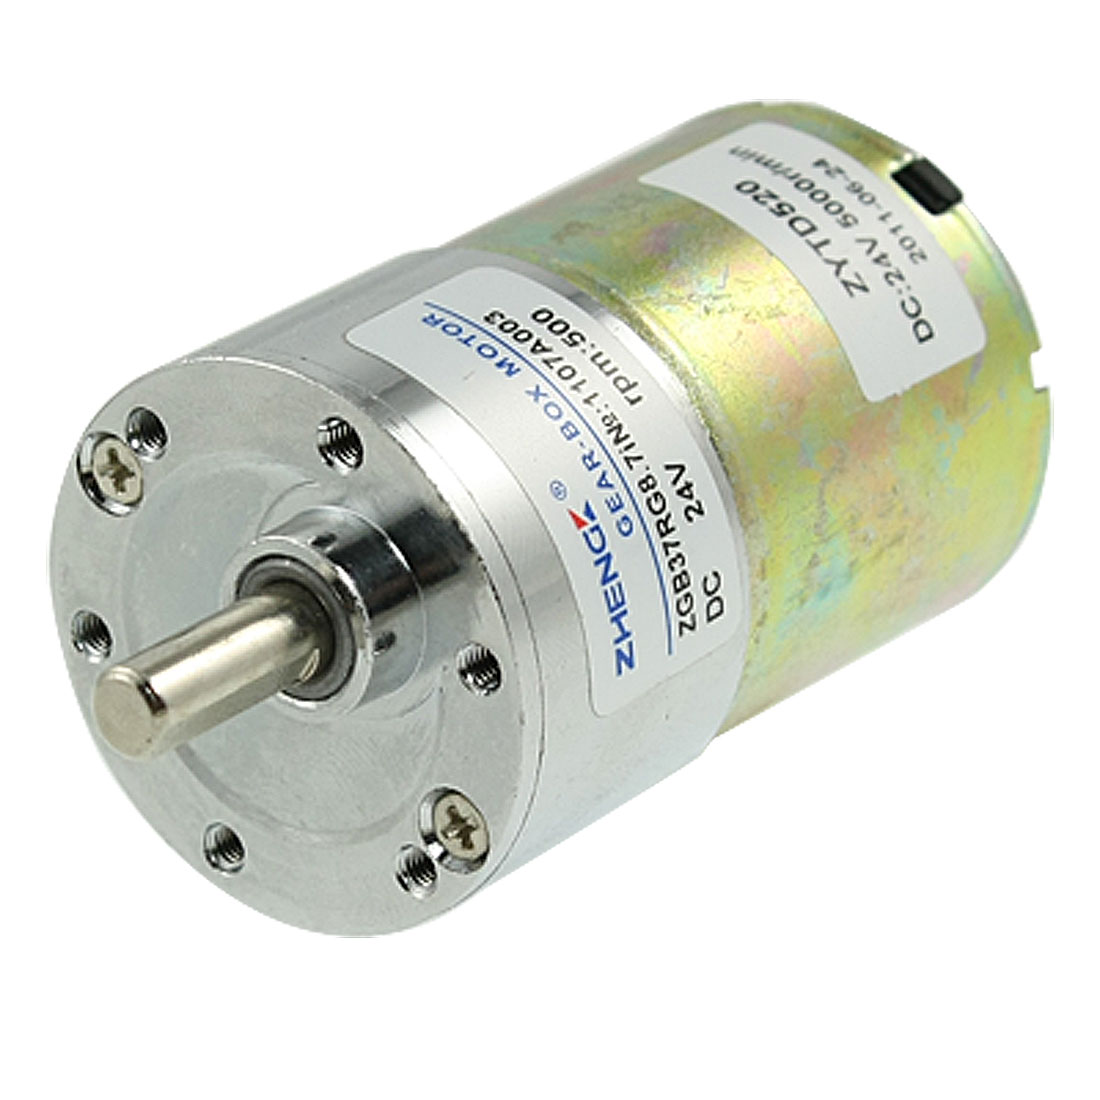 "Replacement Electrical DC 24V 500 RPM 1 1/2"" Geared Box Motor"